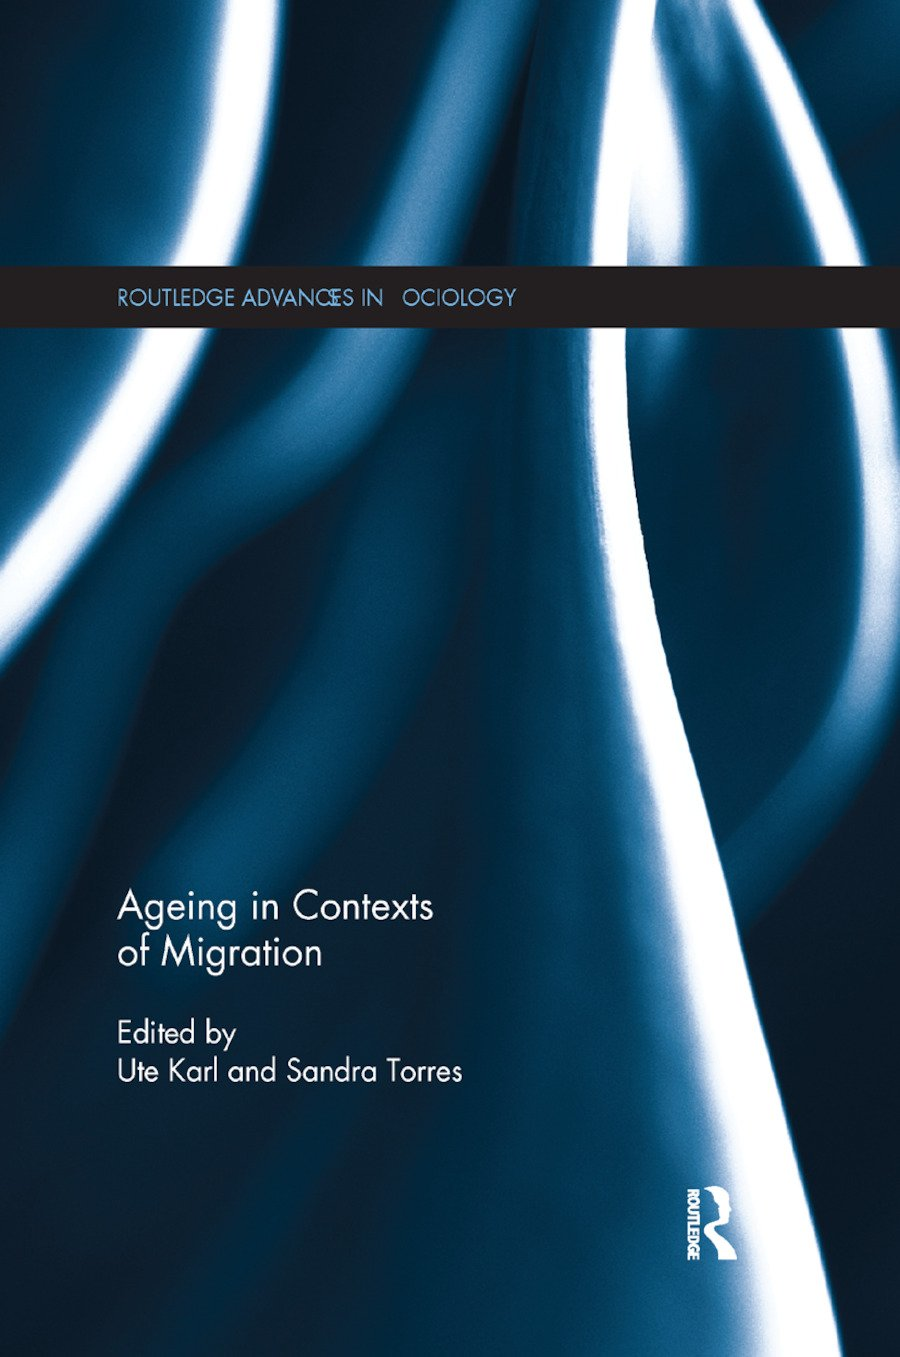 Ageing in Contexts of Migration